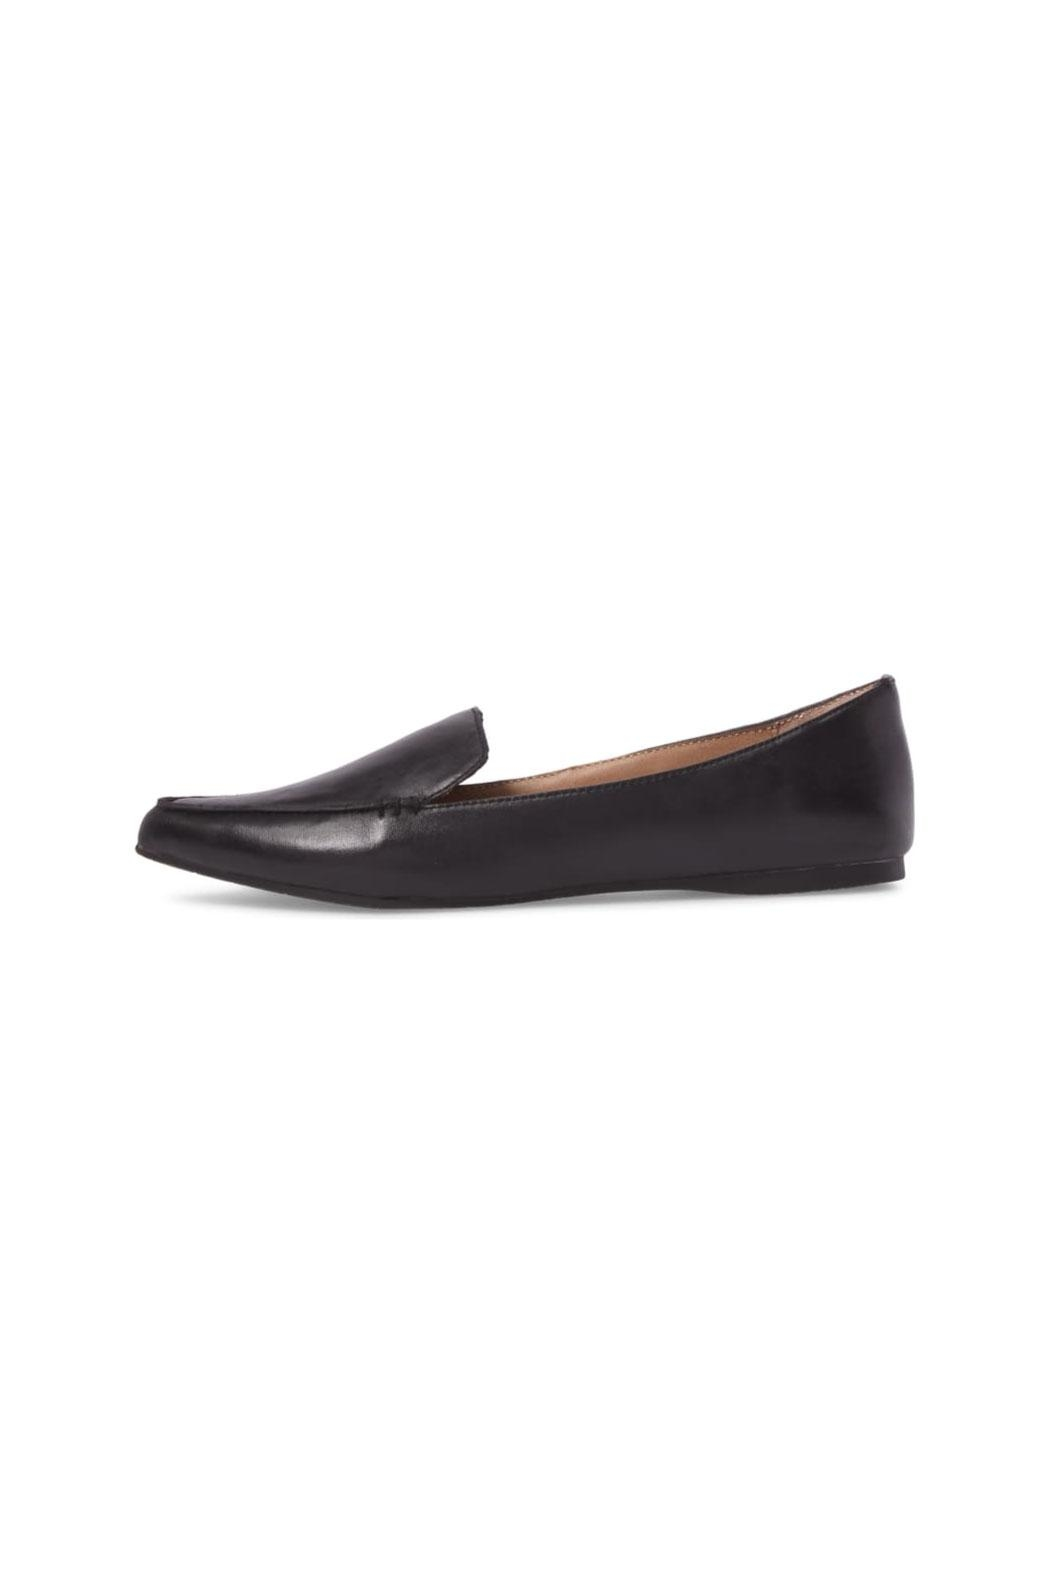 Steve Madden Feather Loafer Flat - Main Image